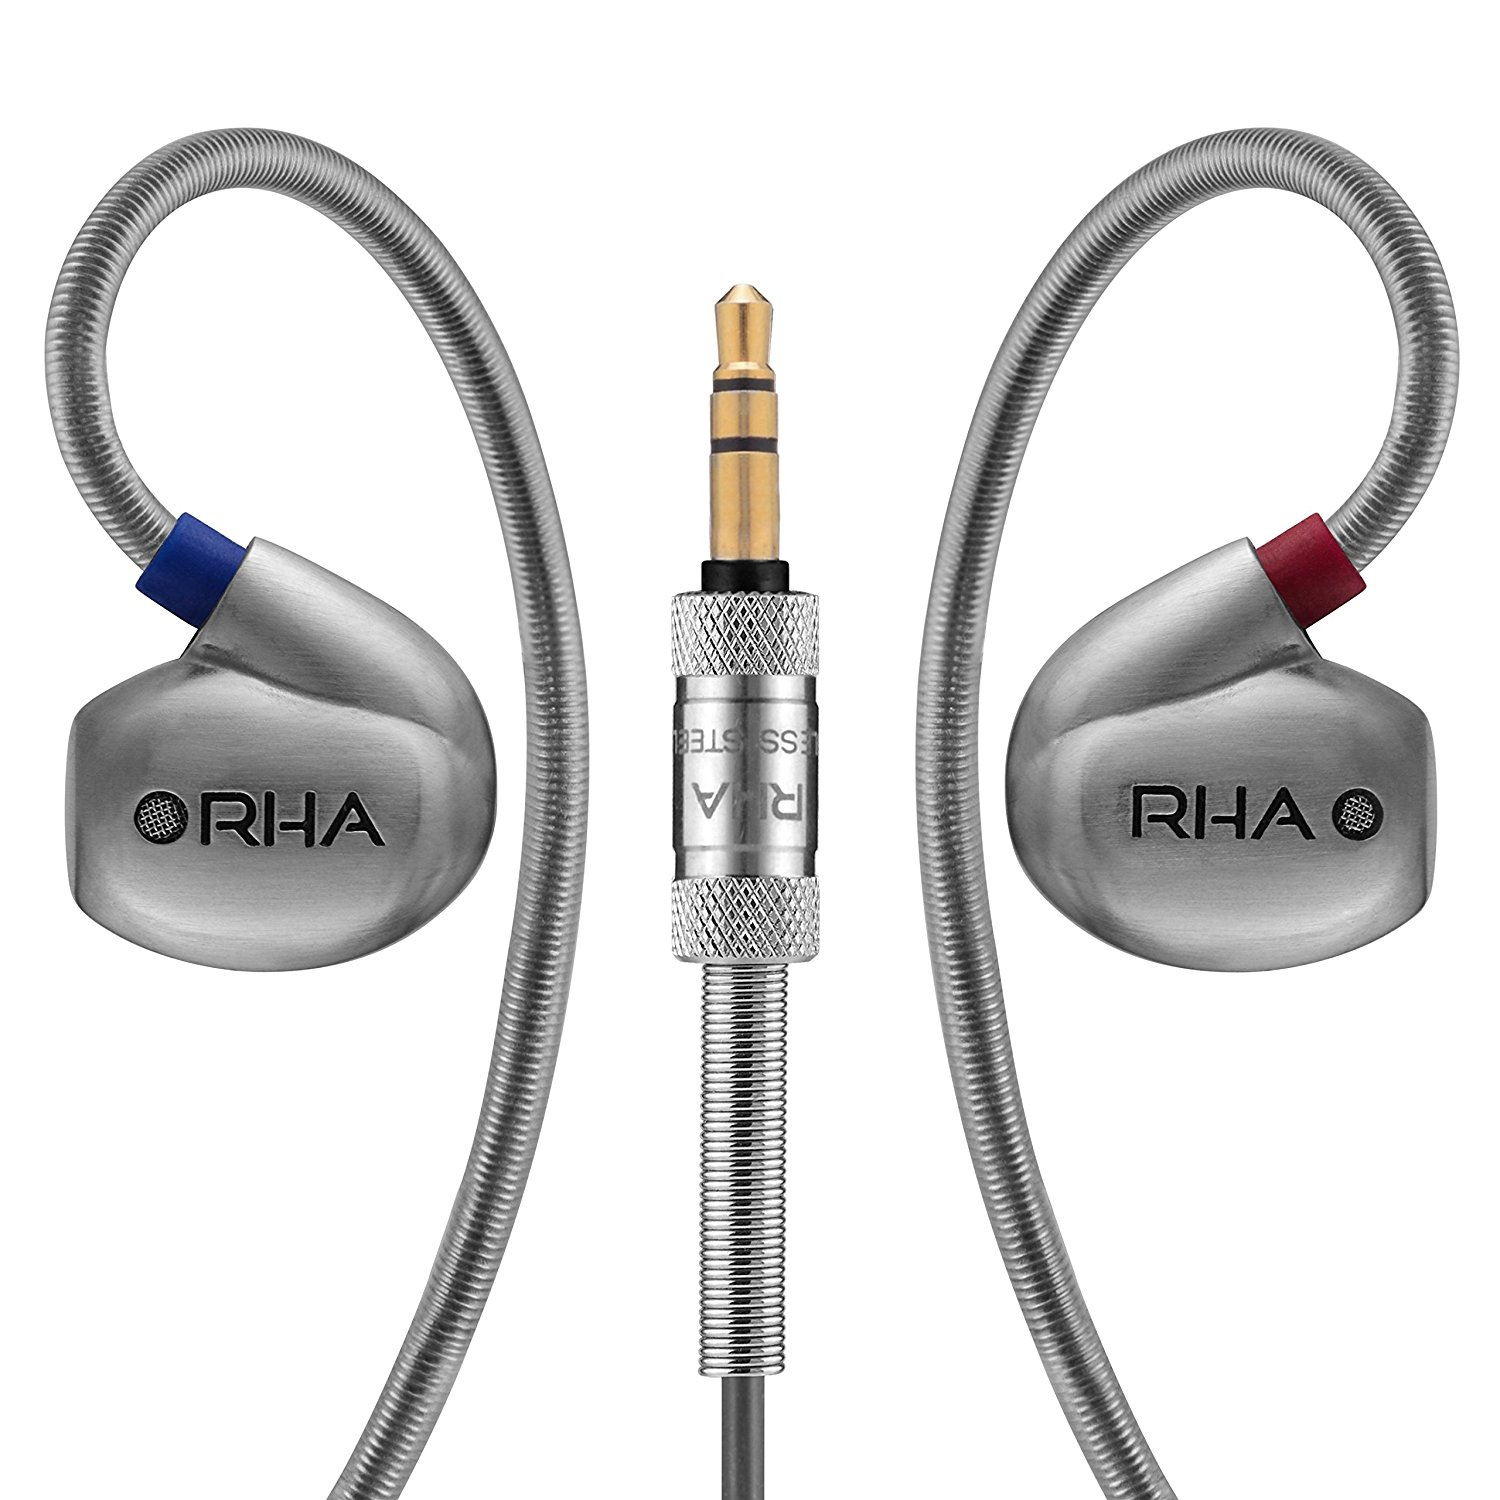 RHA T10 High Fidelity, Noise Isolating In-Ear Headphone Review